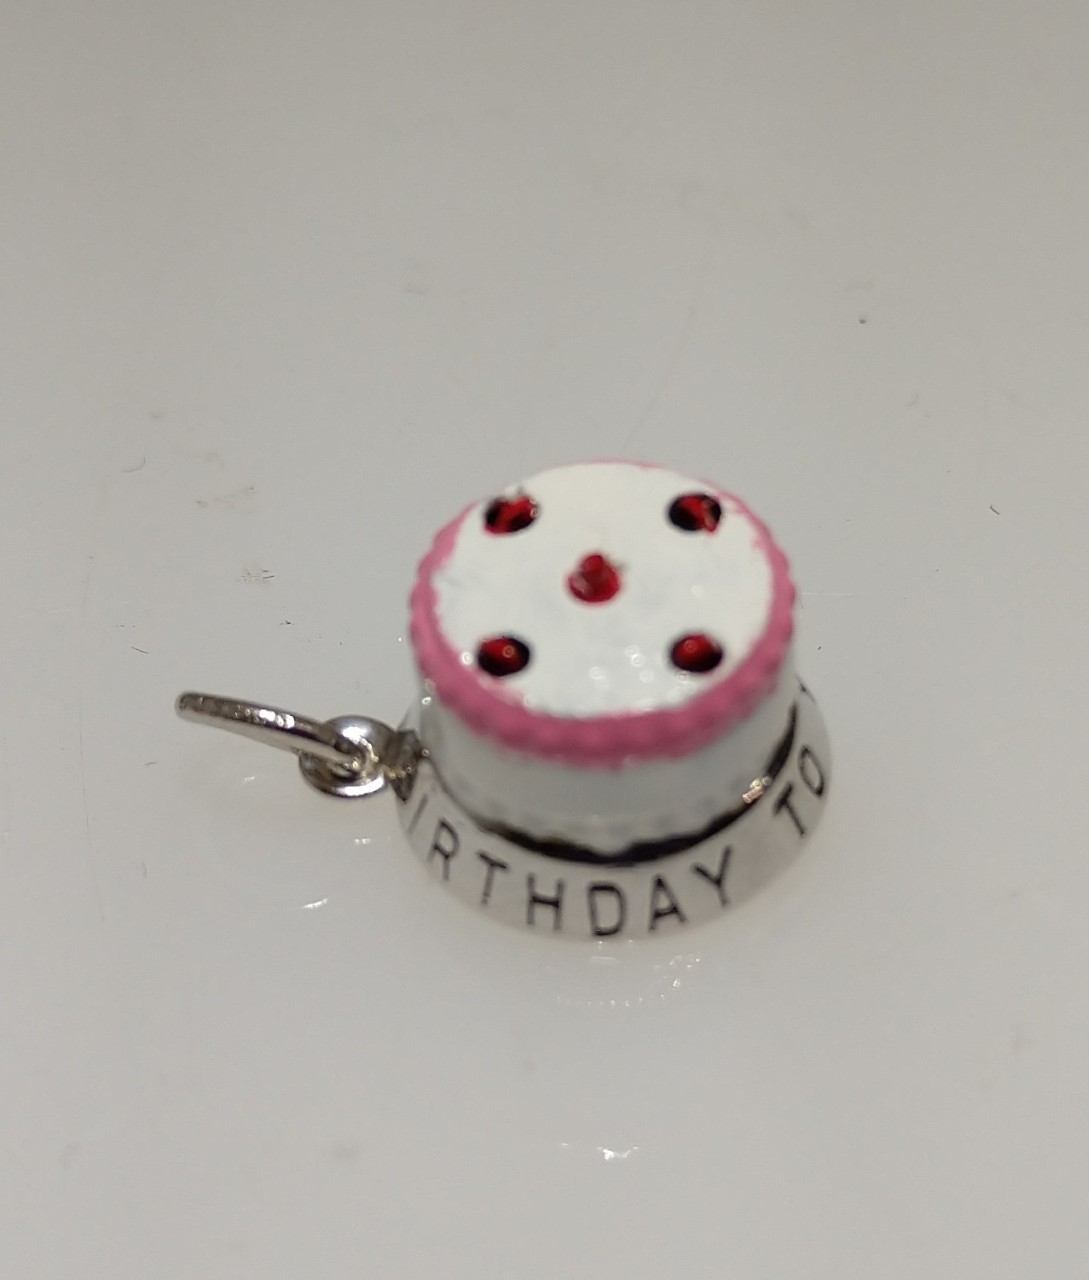 Sterling Silver Enamelled Birthday Cake Charm by Cape Cod Jewelry